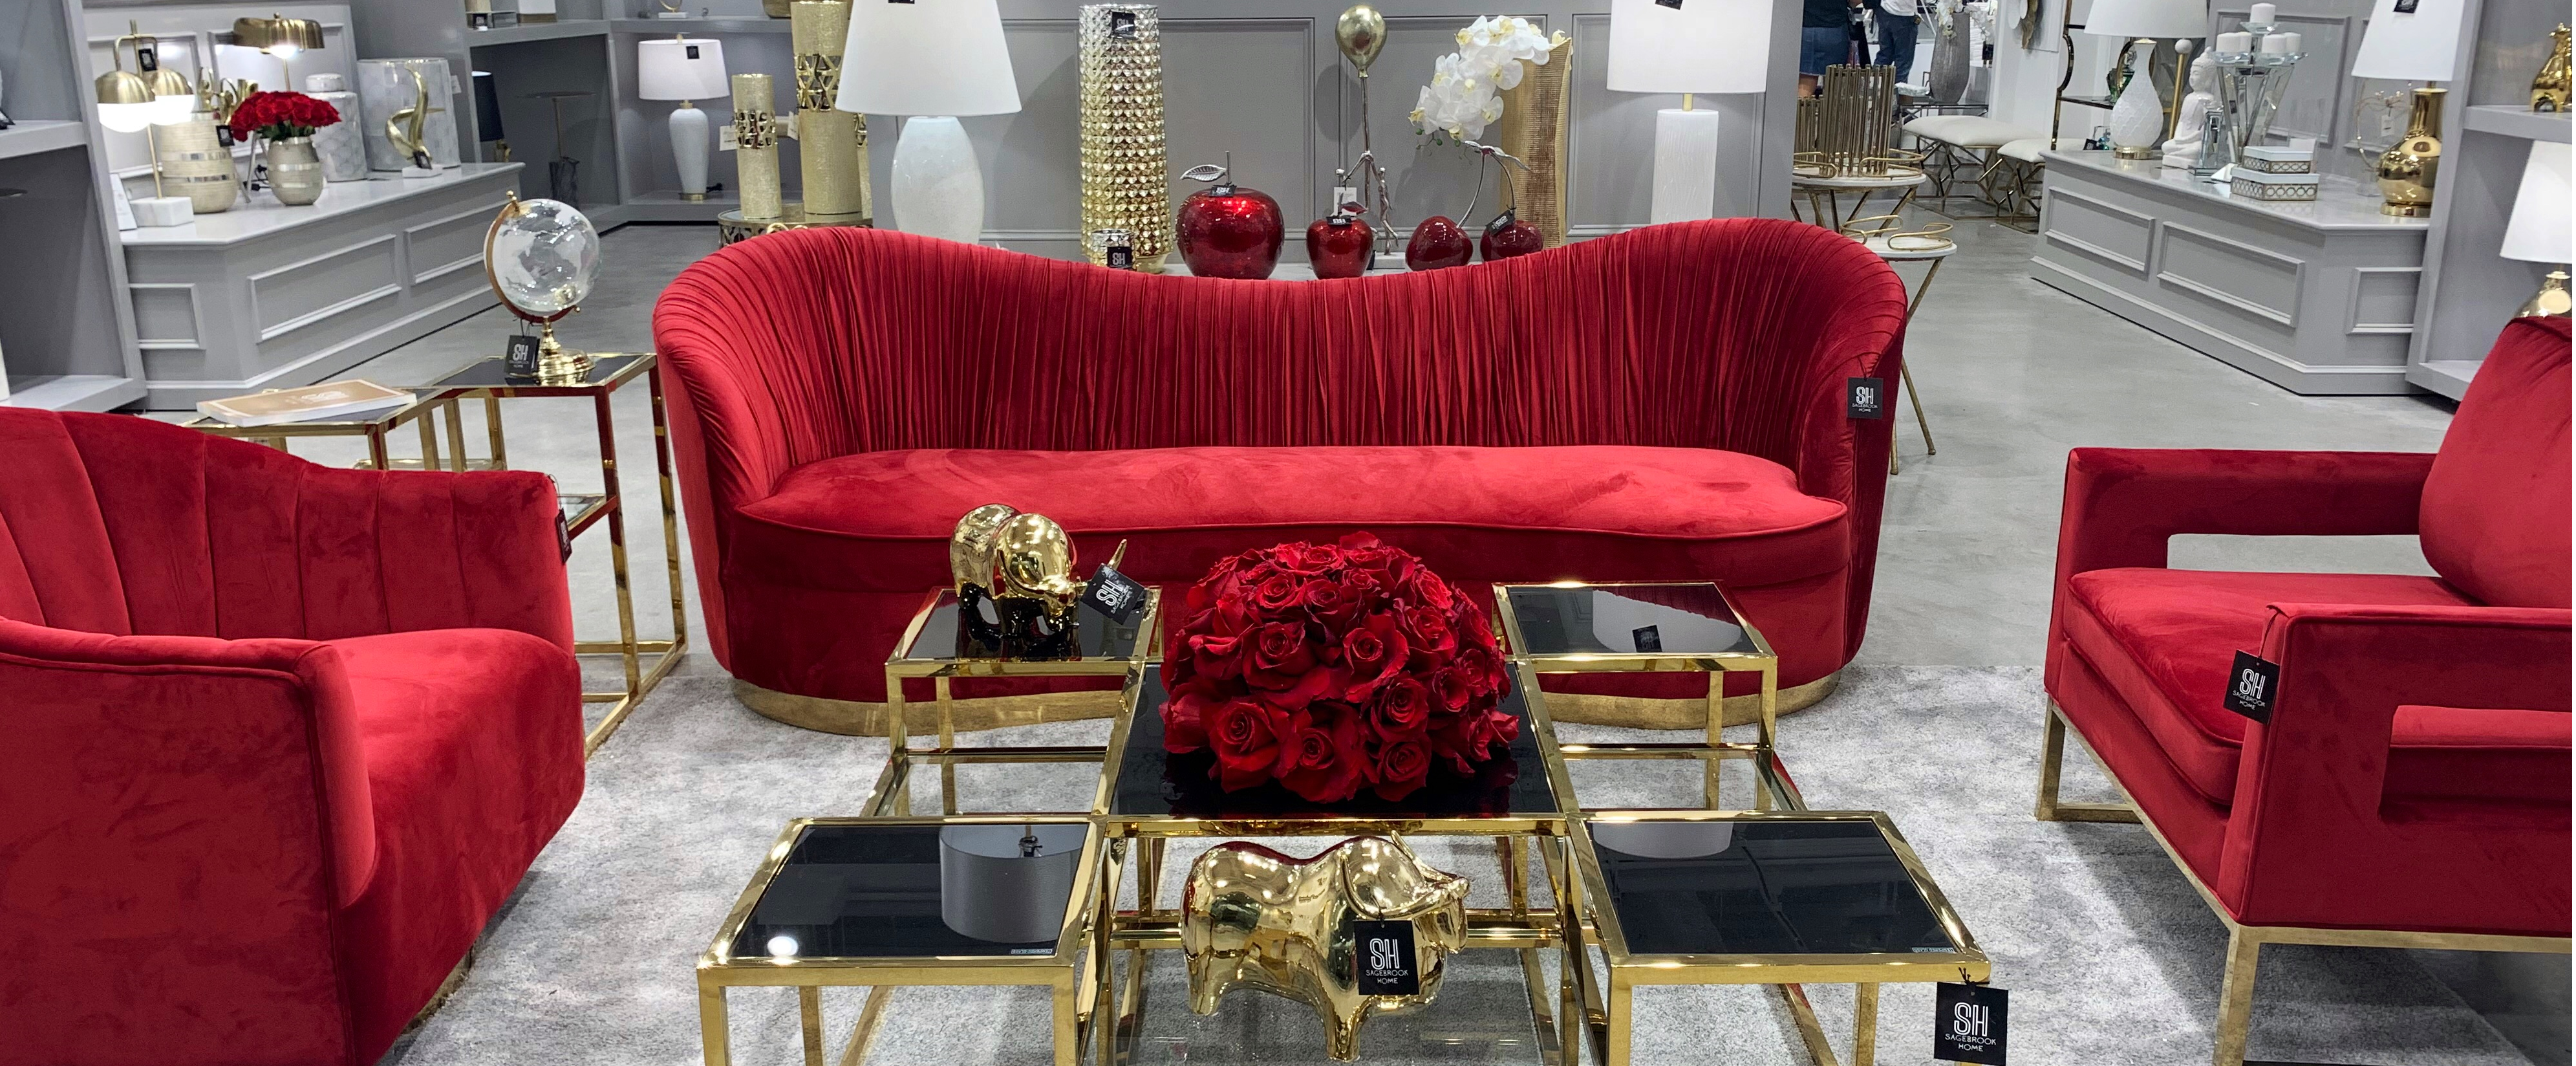 showroom-red-couch.png